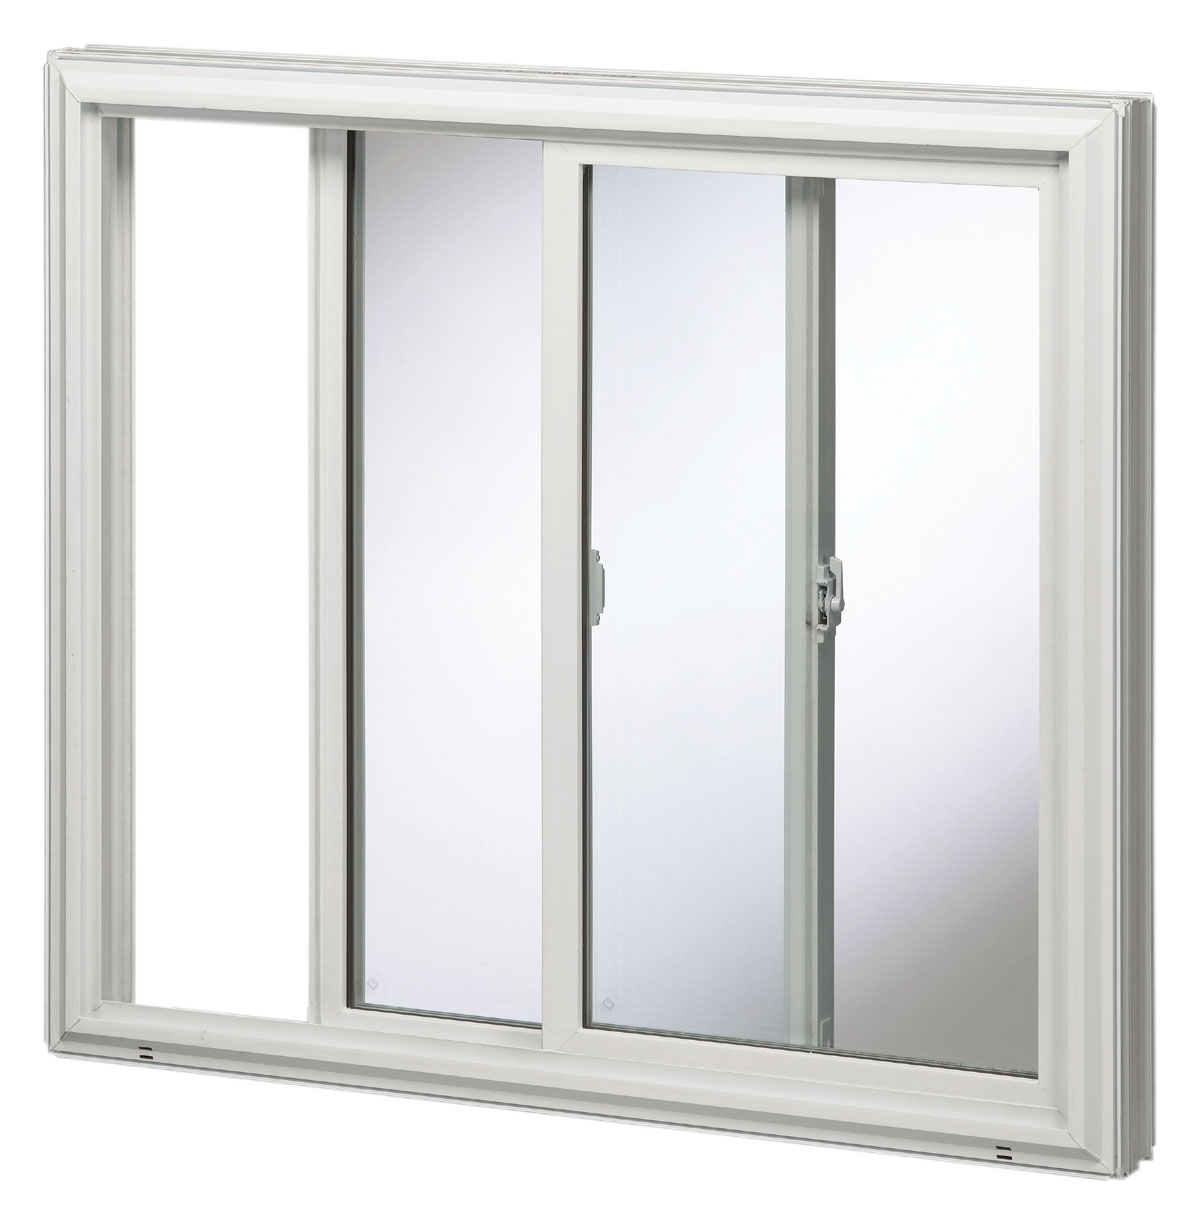 Goldenvinyl 5000 series double slider window golden windows for Sliding glass windows